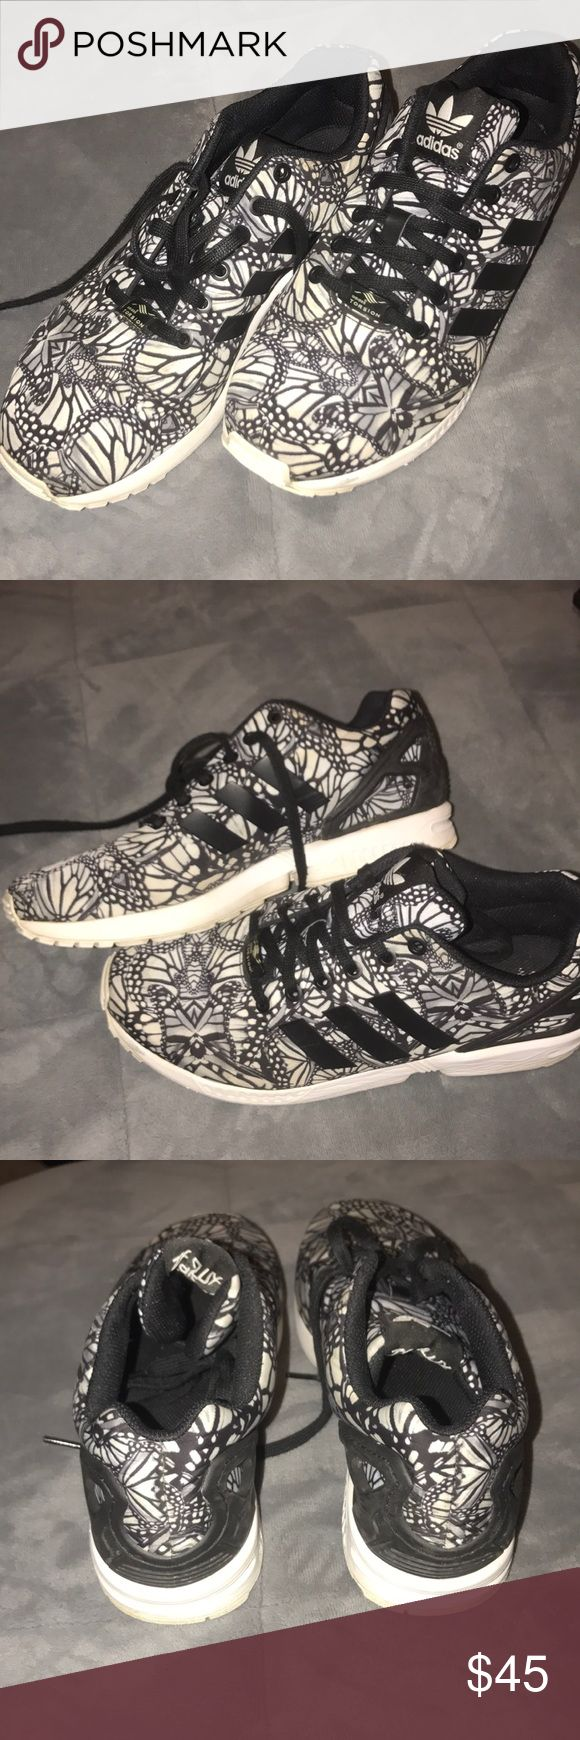 Adidas Torsion ZX Flux Butterfly Print Adidas Torsion ZX Flux black and white butterfly print (amazing condition!) adidas Shoes Sneakers